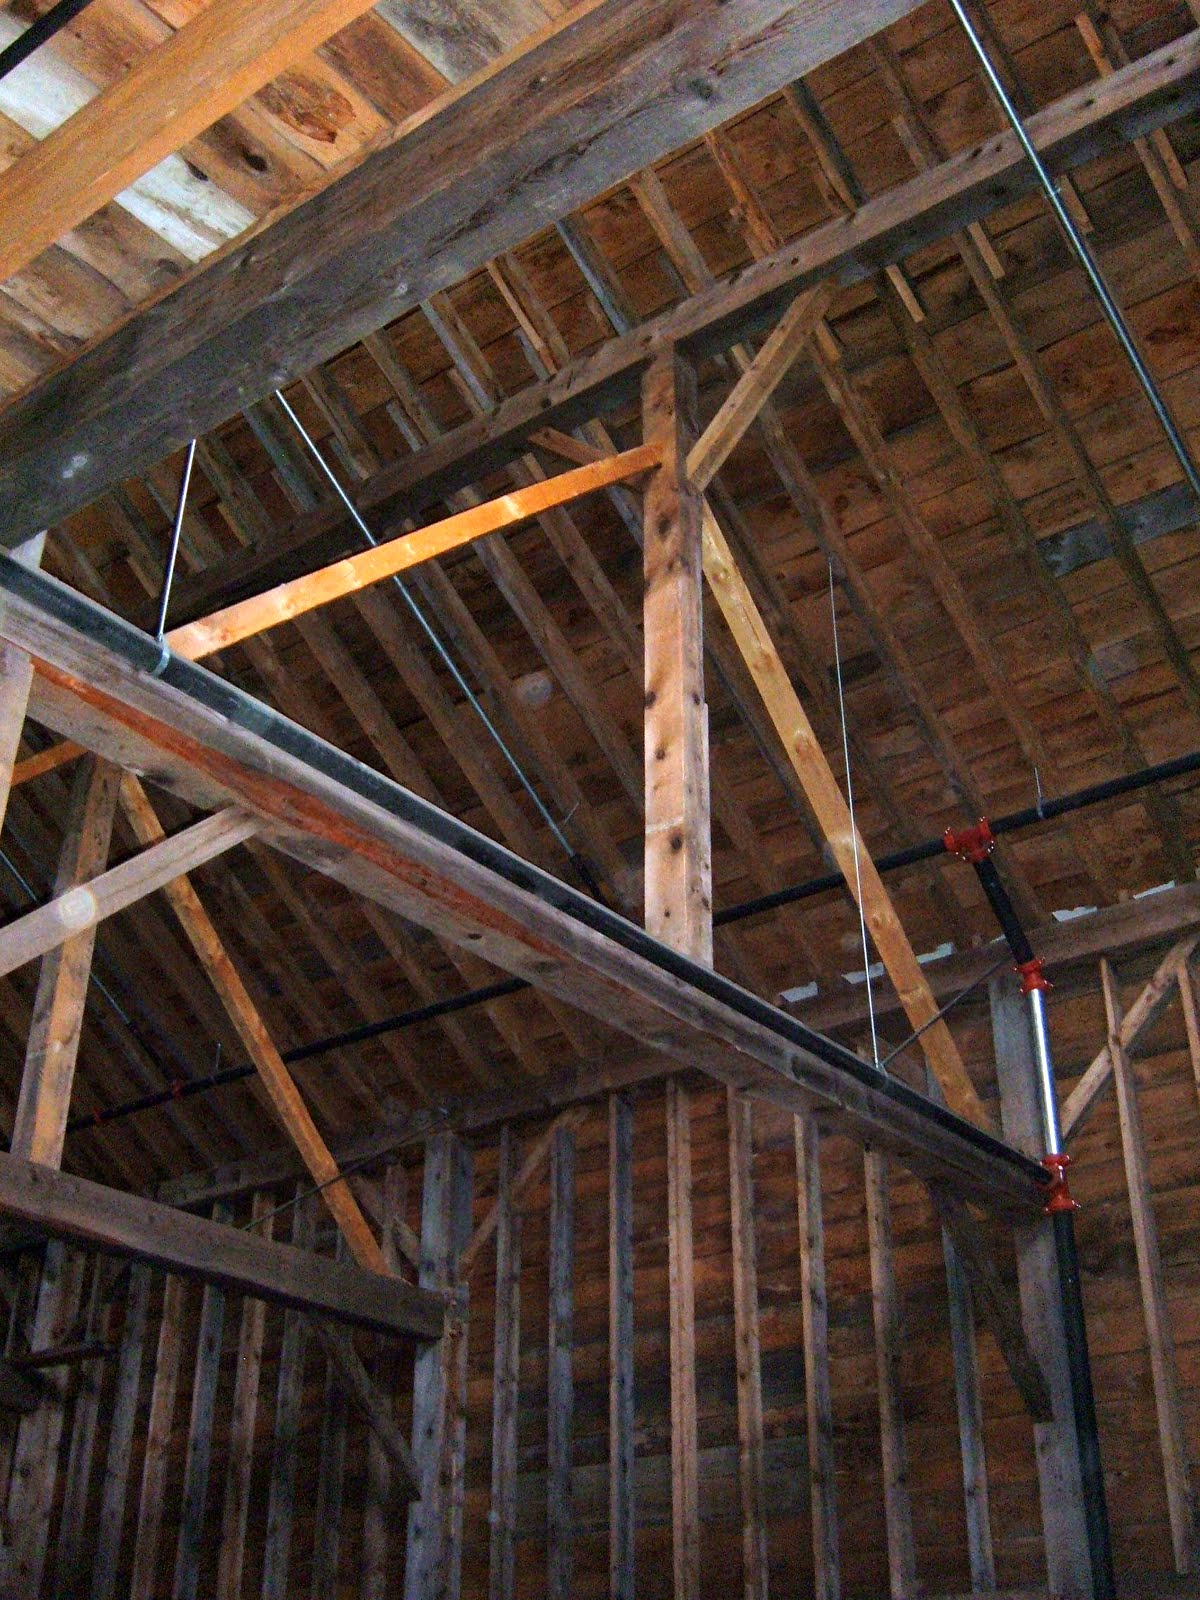 Purlin post are supported by two braces making it a king post truss.Which helps stop the tie beam from deflecting from the roof load.